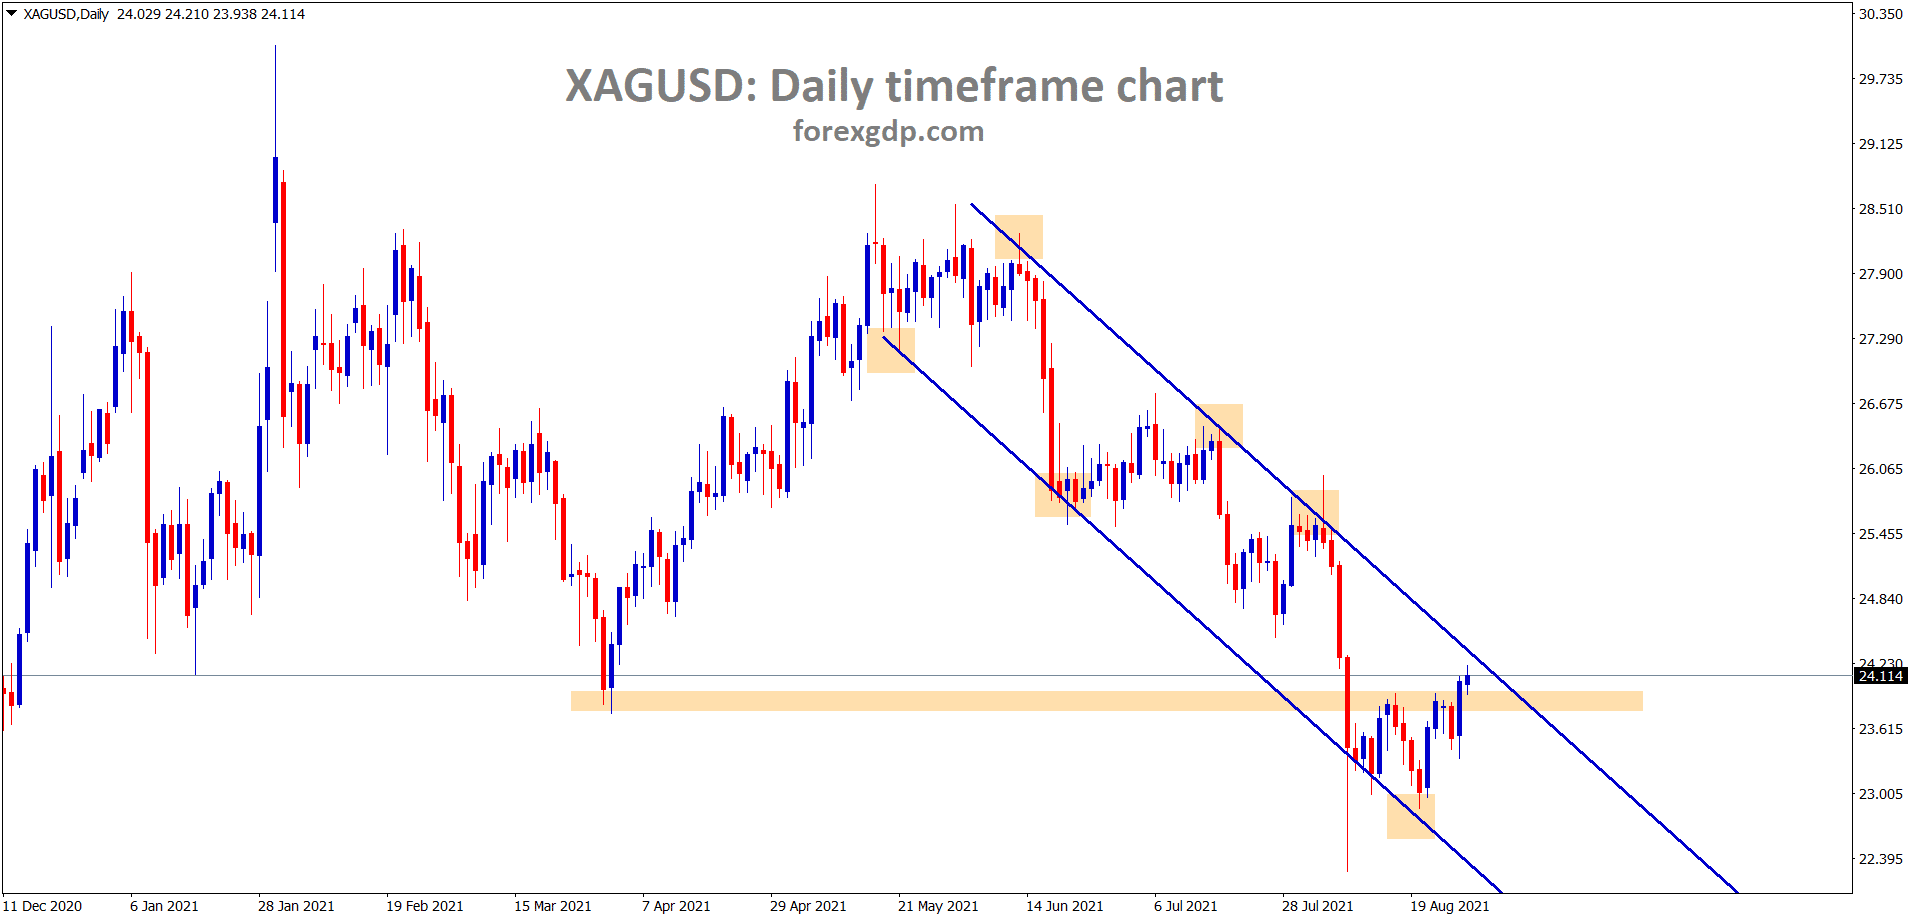 XAGUSD silver price reached the lower high of the descending channel